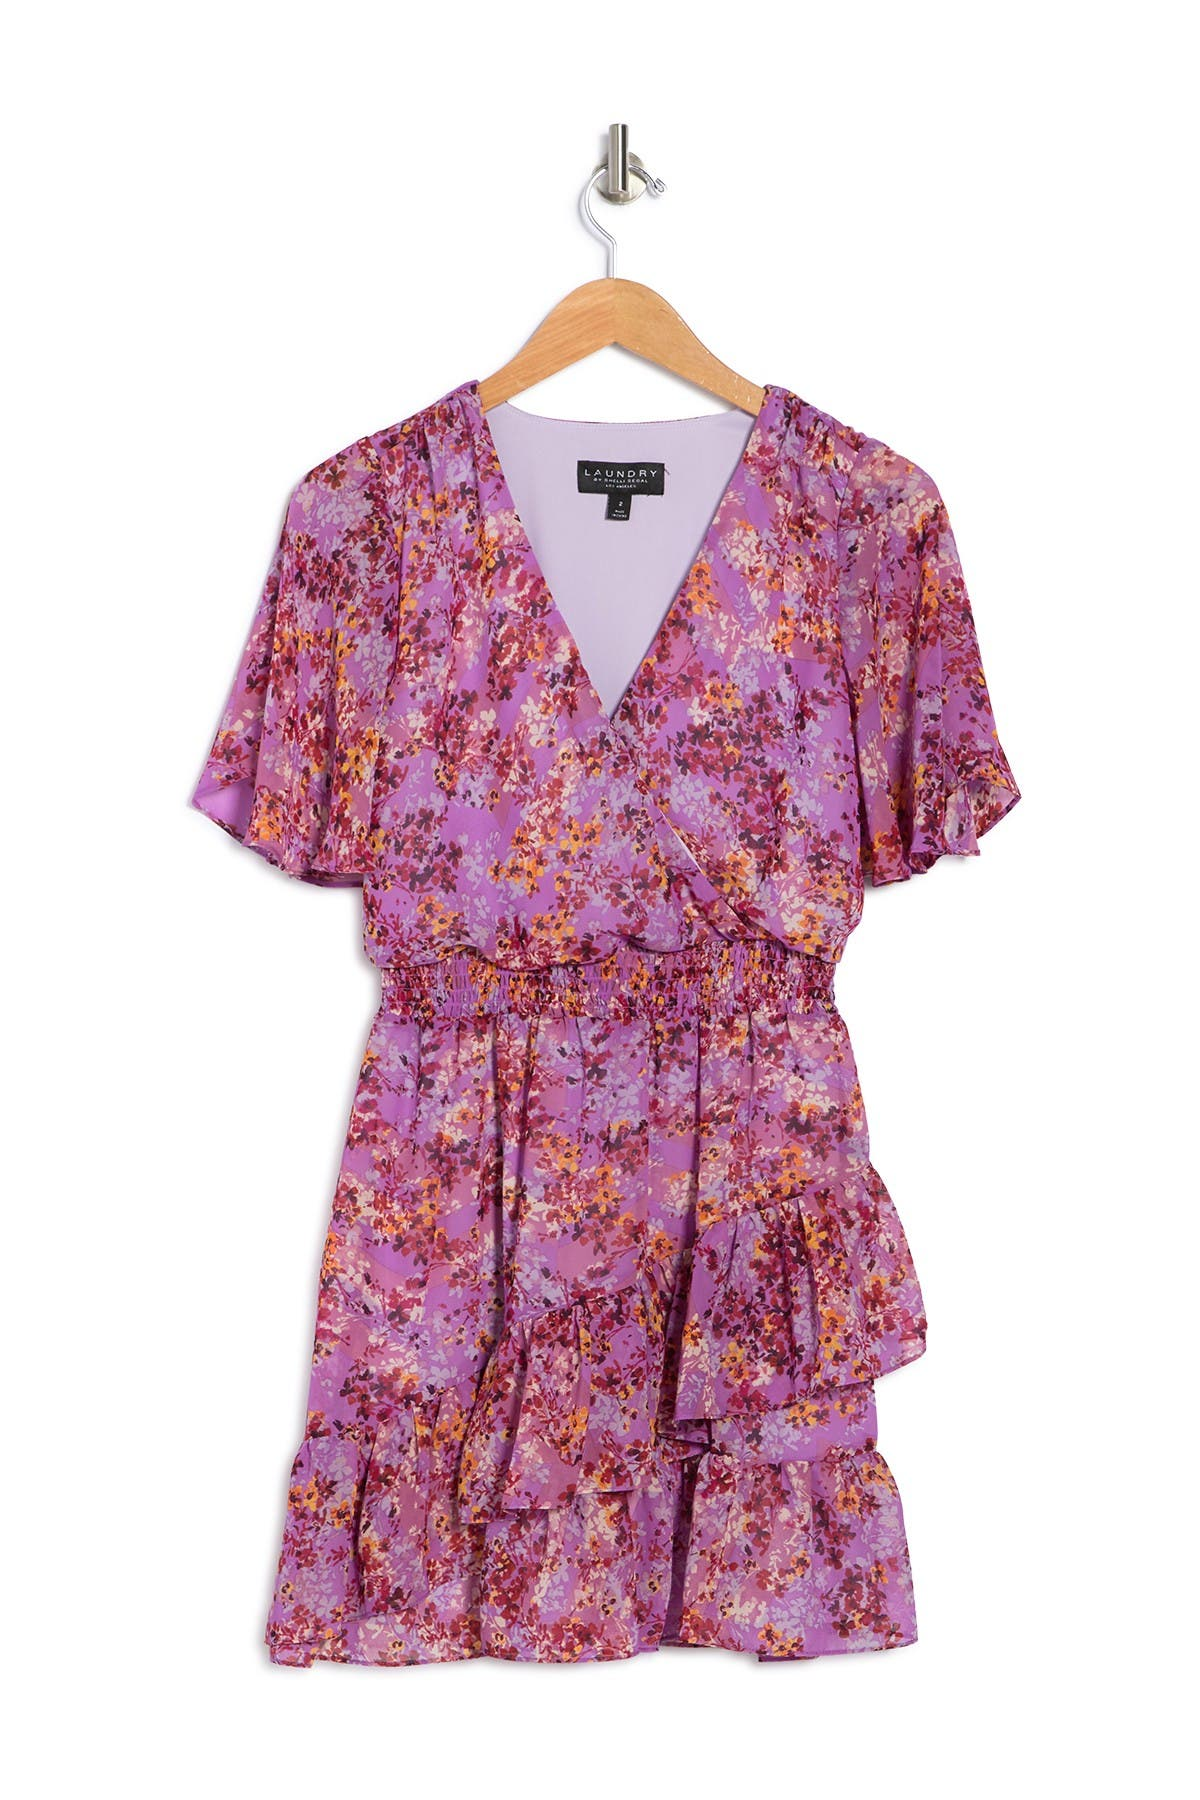 Laundry By Shelli Segal FLORAL TIERED RUFFLE MINI DRESS